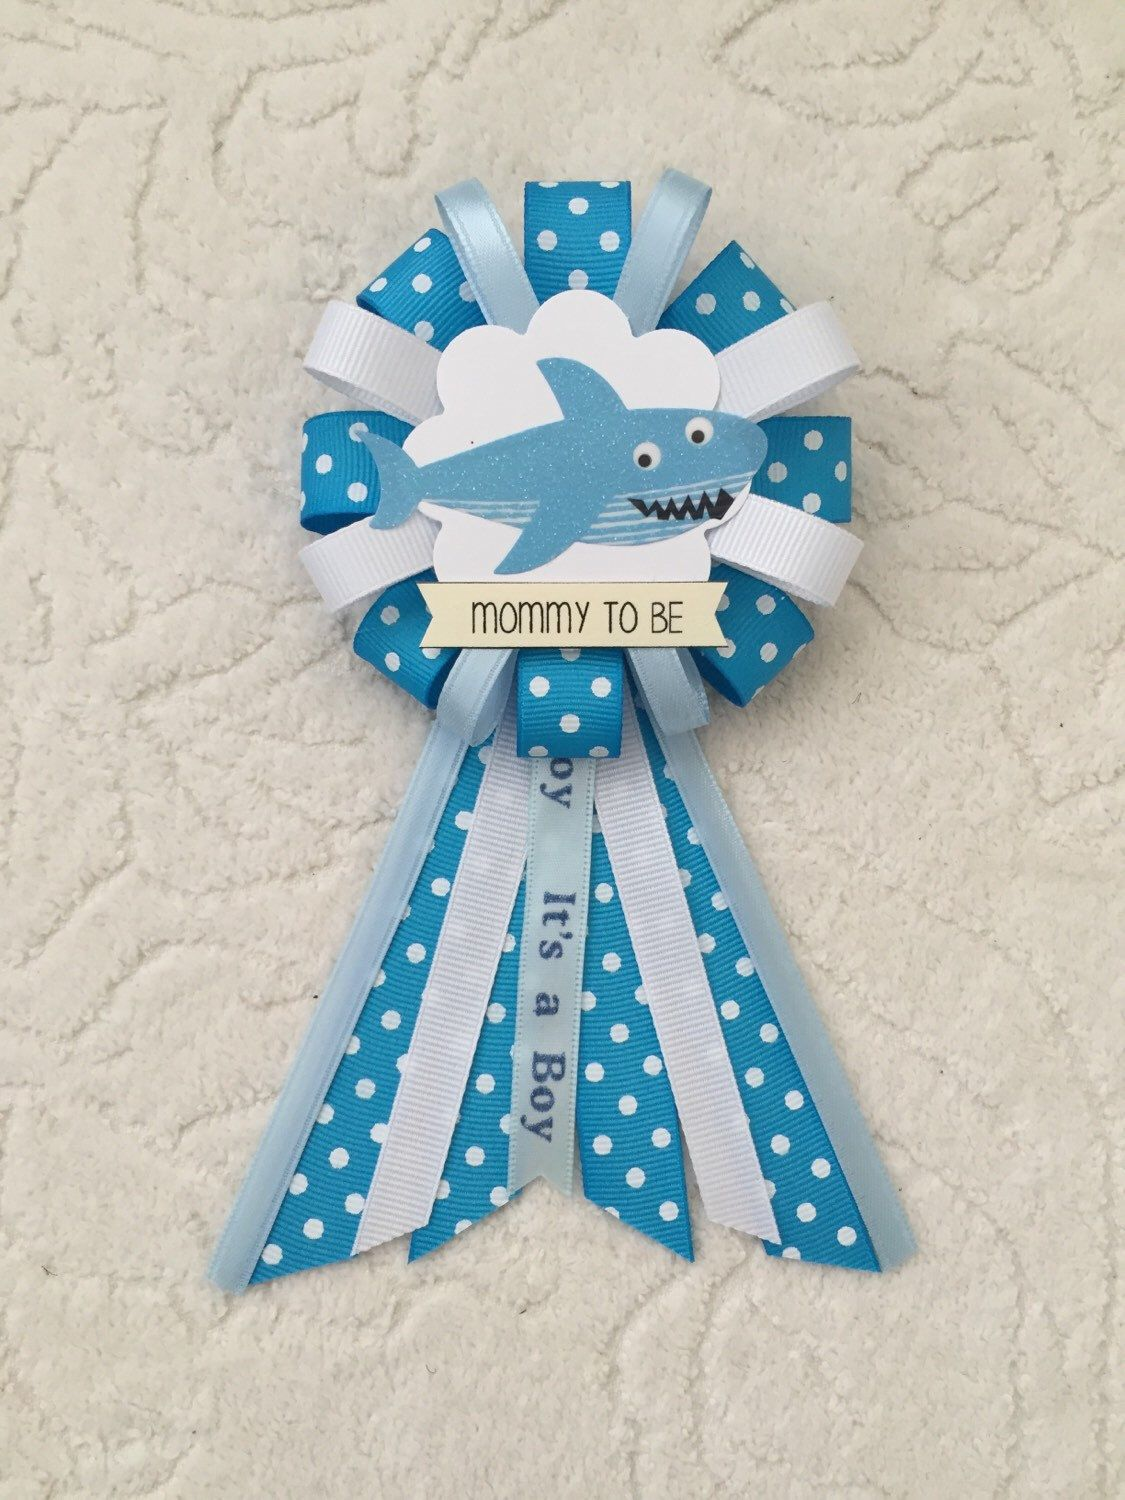 Mommy To Be Ribbon Corsage For Baby Shower It S A Boy Under